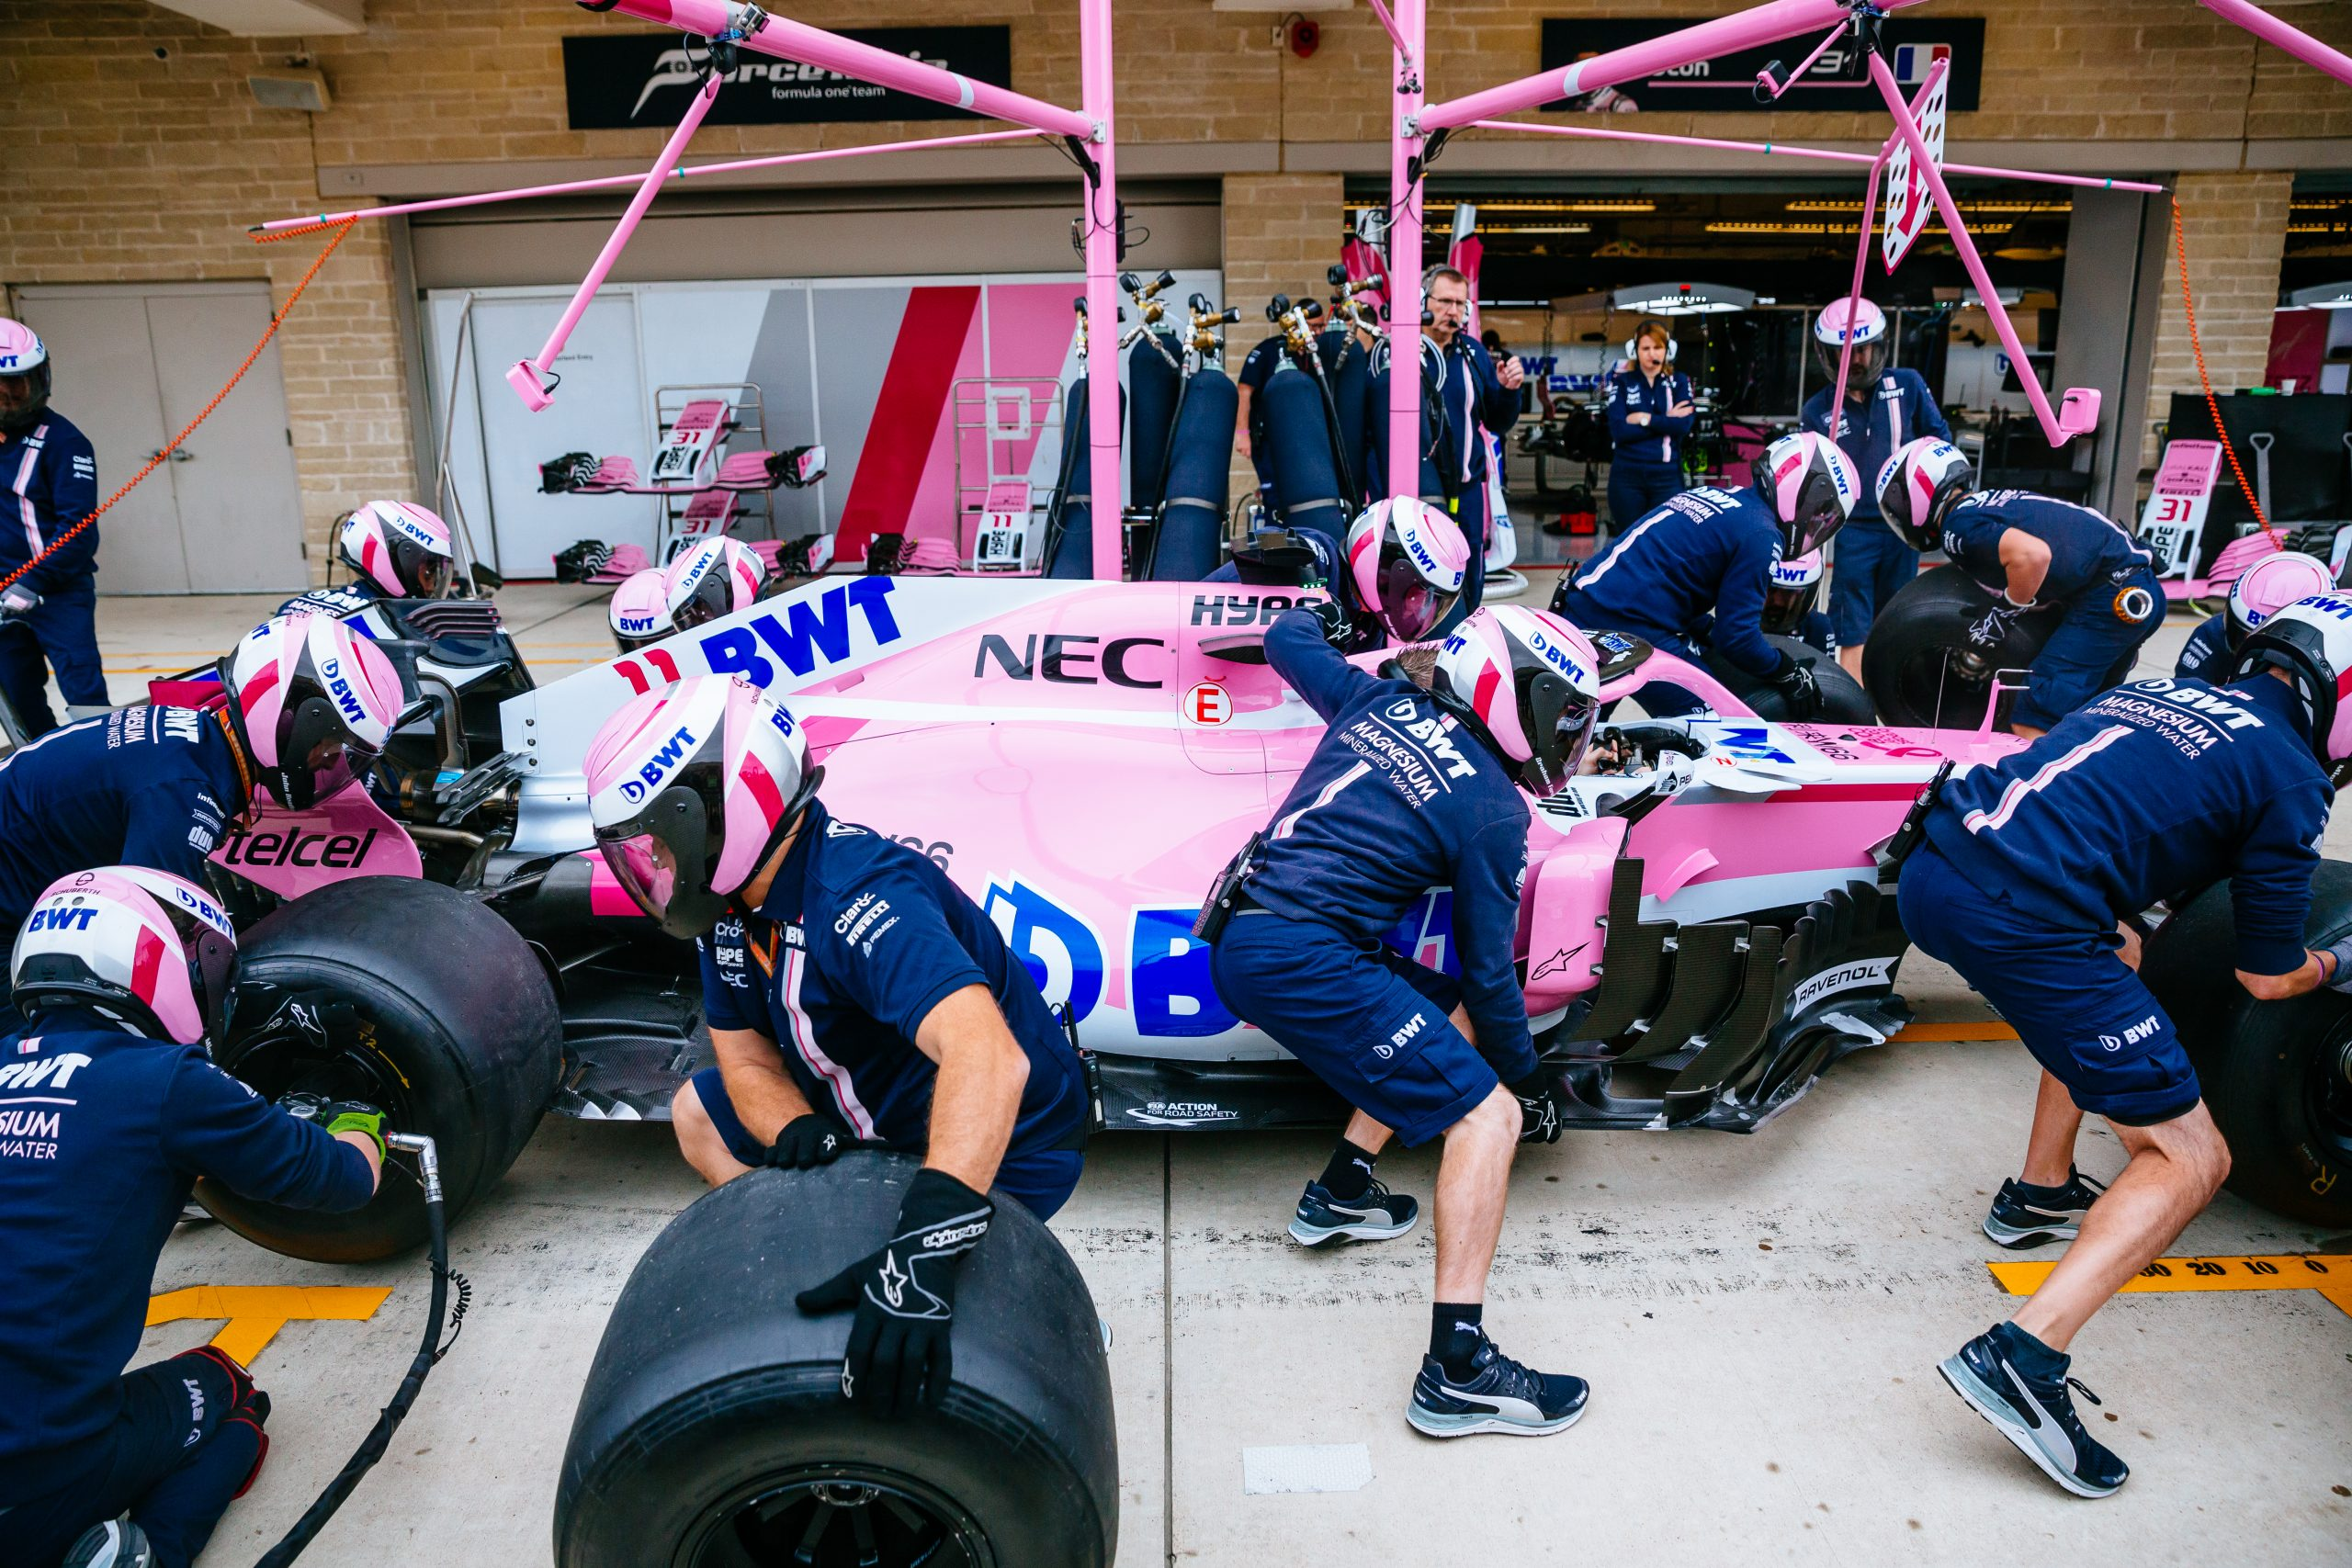 Prior to the start of FP3, the team performs several repetitions of pit stop practice by rolling the car into the pit box and performing different tasks like changing the tires. This practice is what helps them do pitstops in under three seconds on a regular basis.